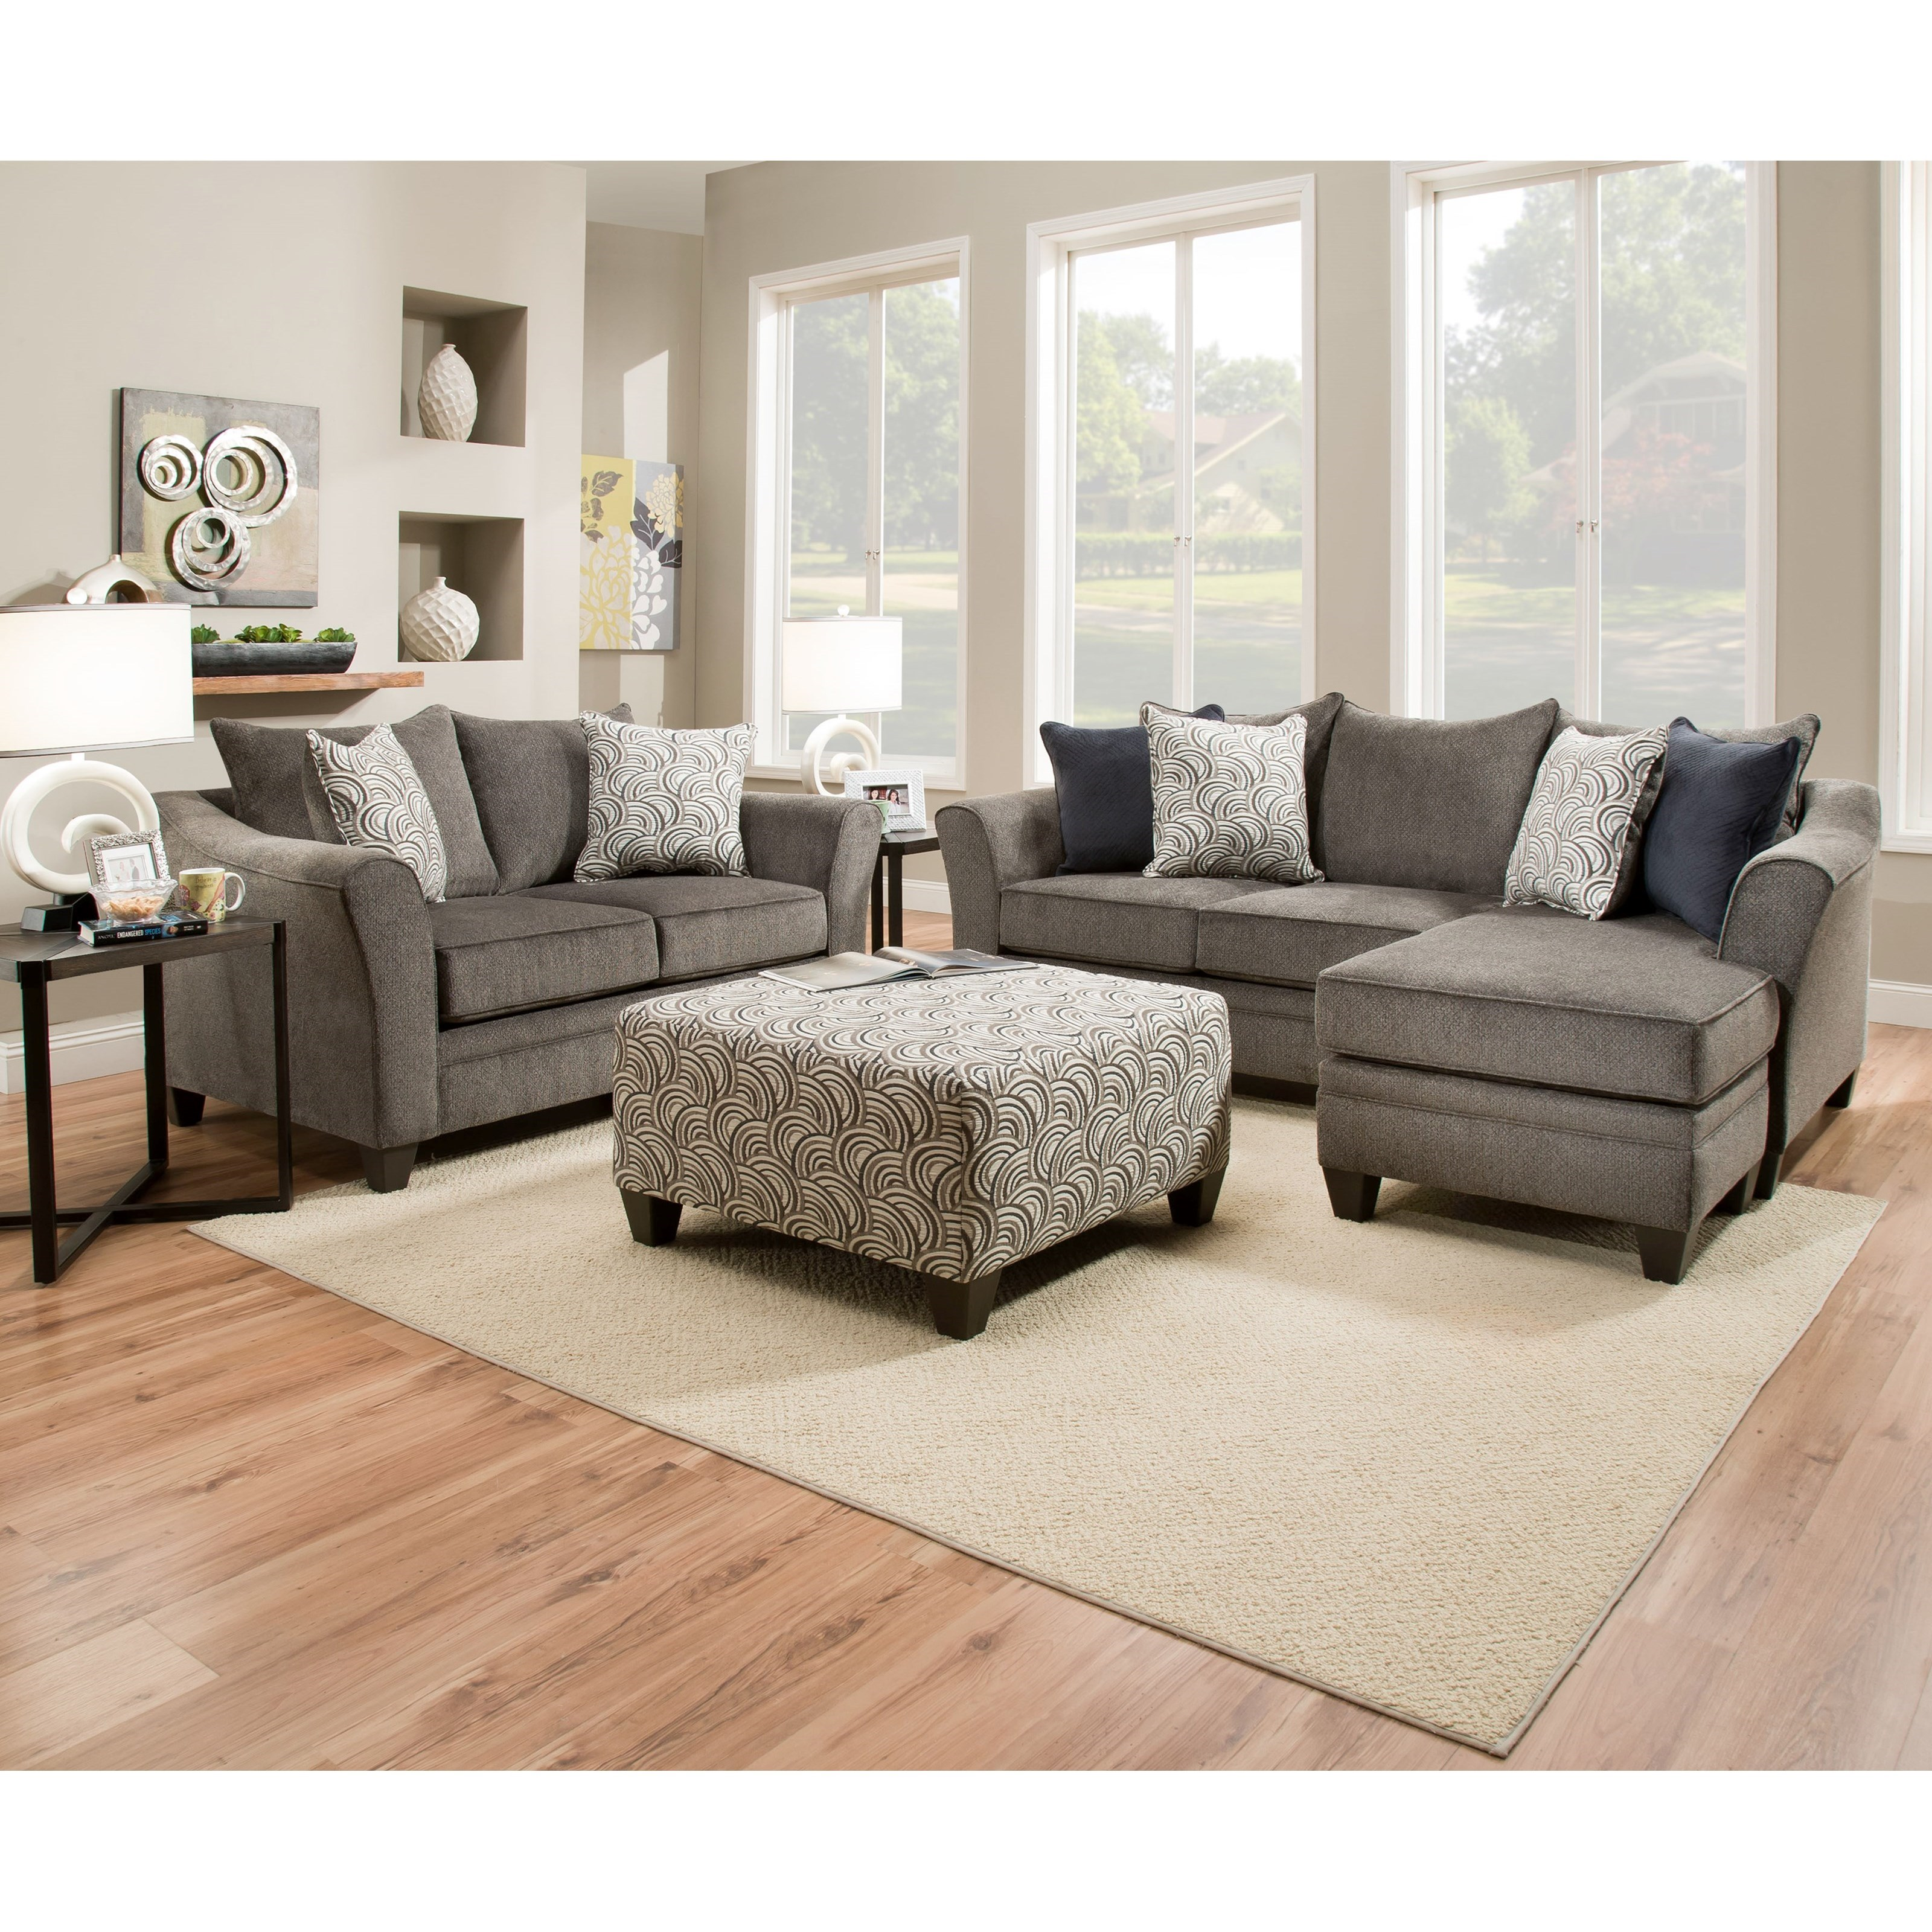 Ashley Furniture Redding Ca: United Furniture Industries 6485 6485SOFACHAISE